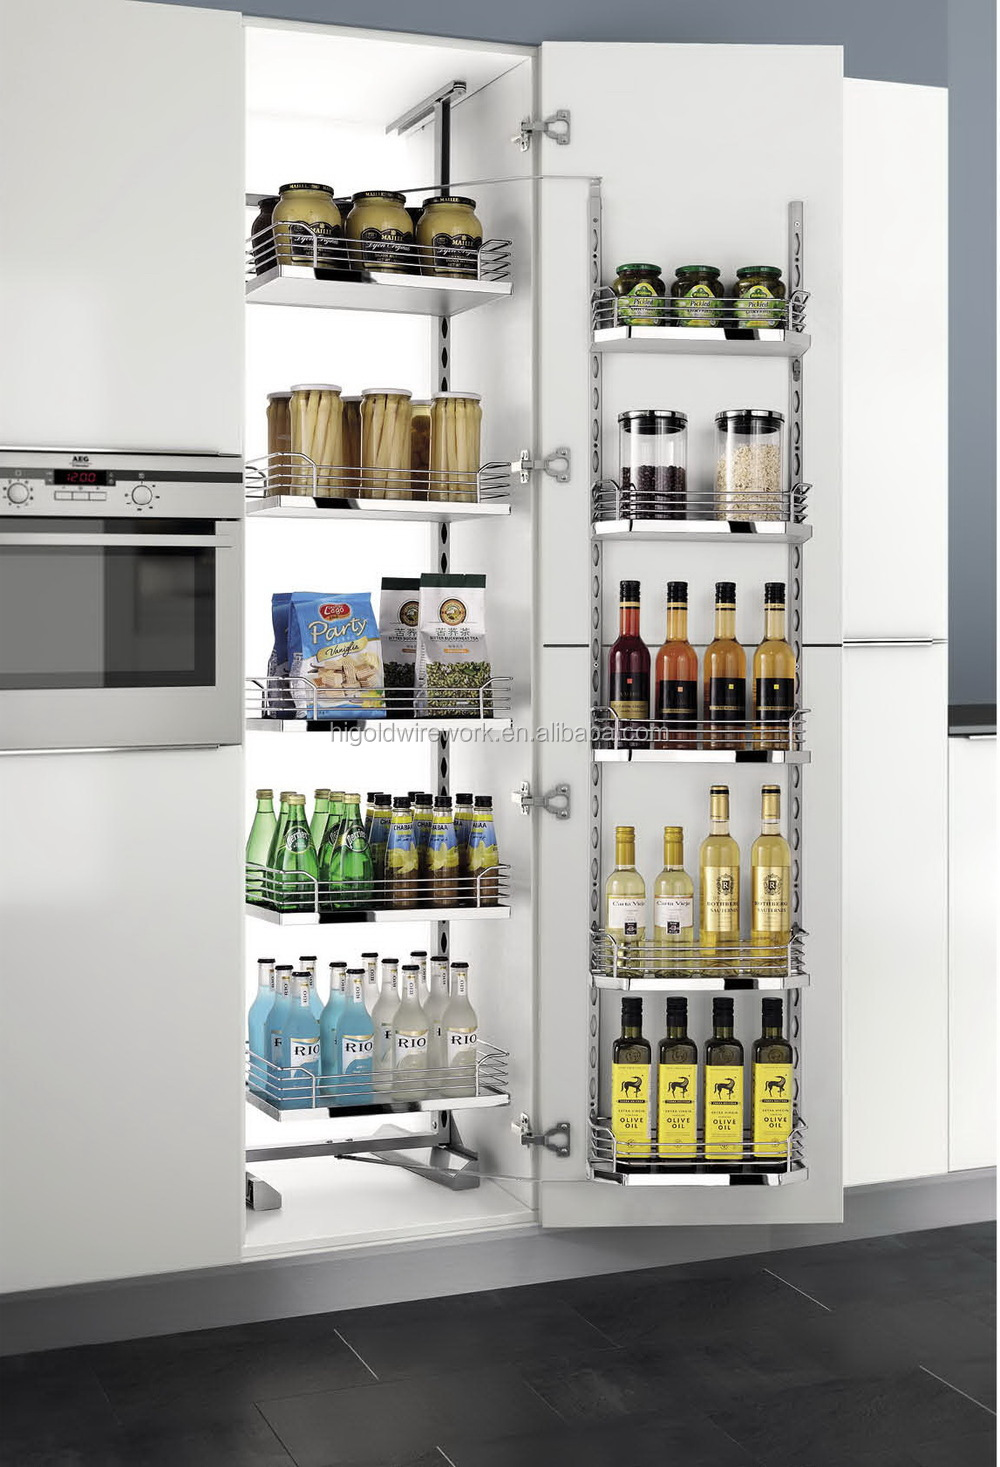 Tandem Pantry Unit kitchen Sliding Pull Out Storage baskets